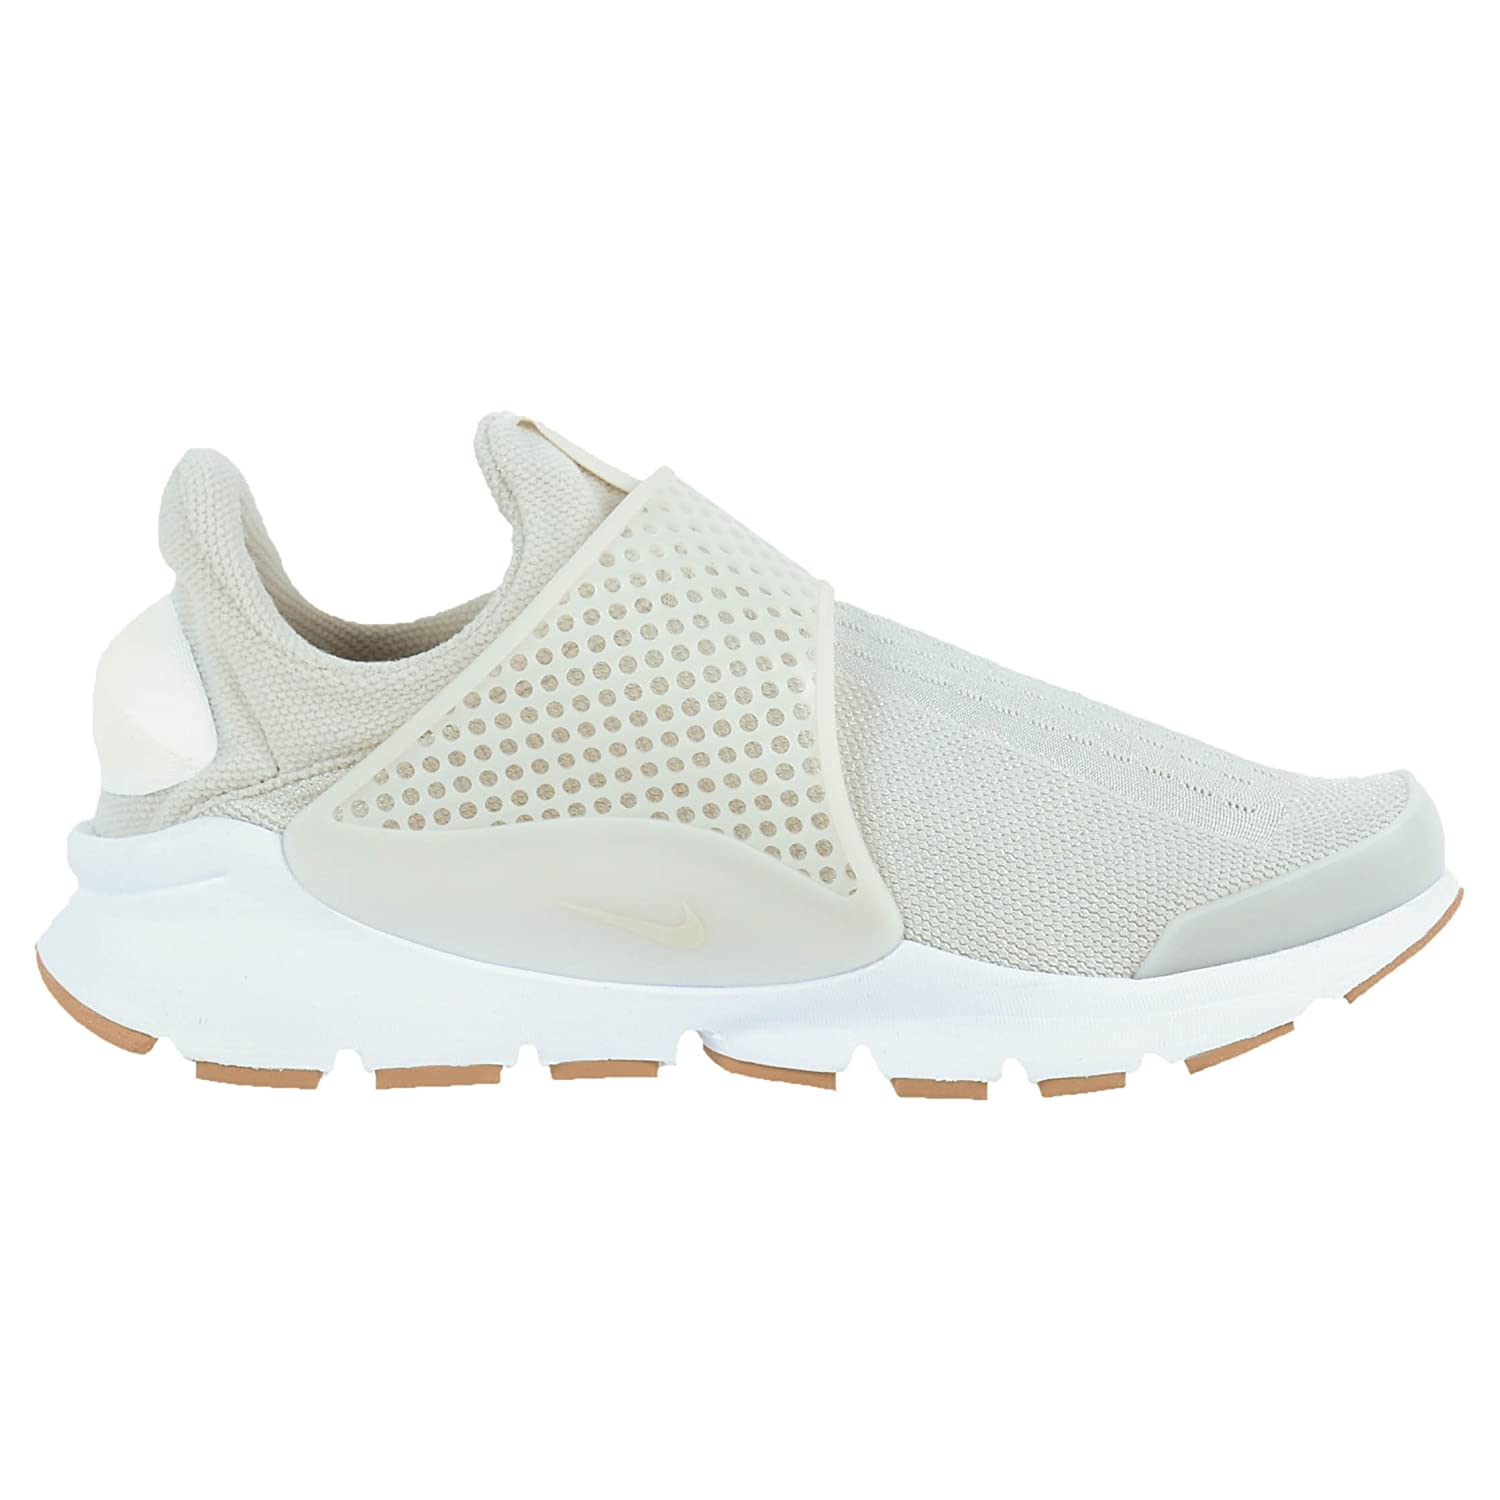 cheap for discount 1b9f0 59386 Amazon.com   NIKE WOMENS SOCK DART CASUAL RUNNING SHOES LIGHT BONE SAIL  WHITE 848475 002   Road Running